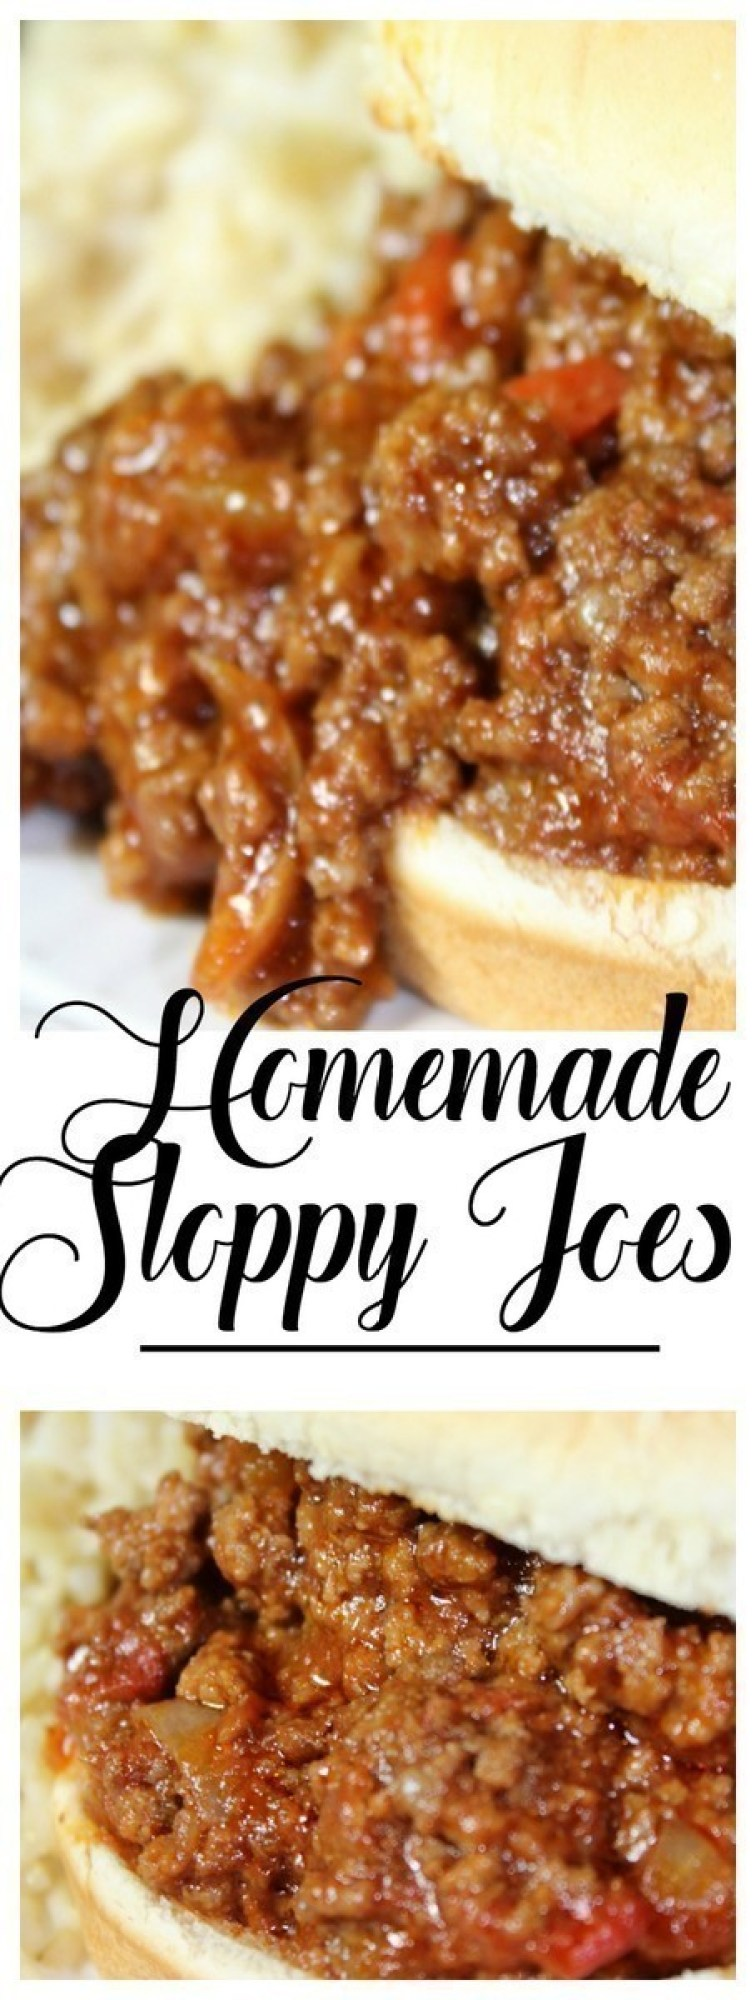 The best homemade Instant Pot Sloppy Joe recipe you'll ever find! #InstantPot #SloppyJoes #homemade